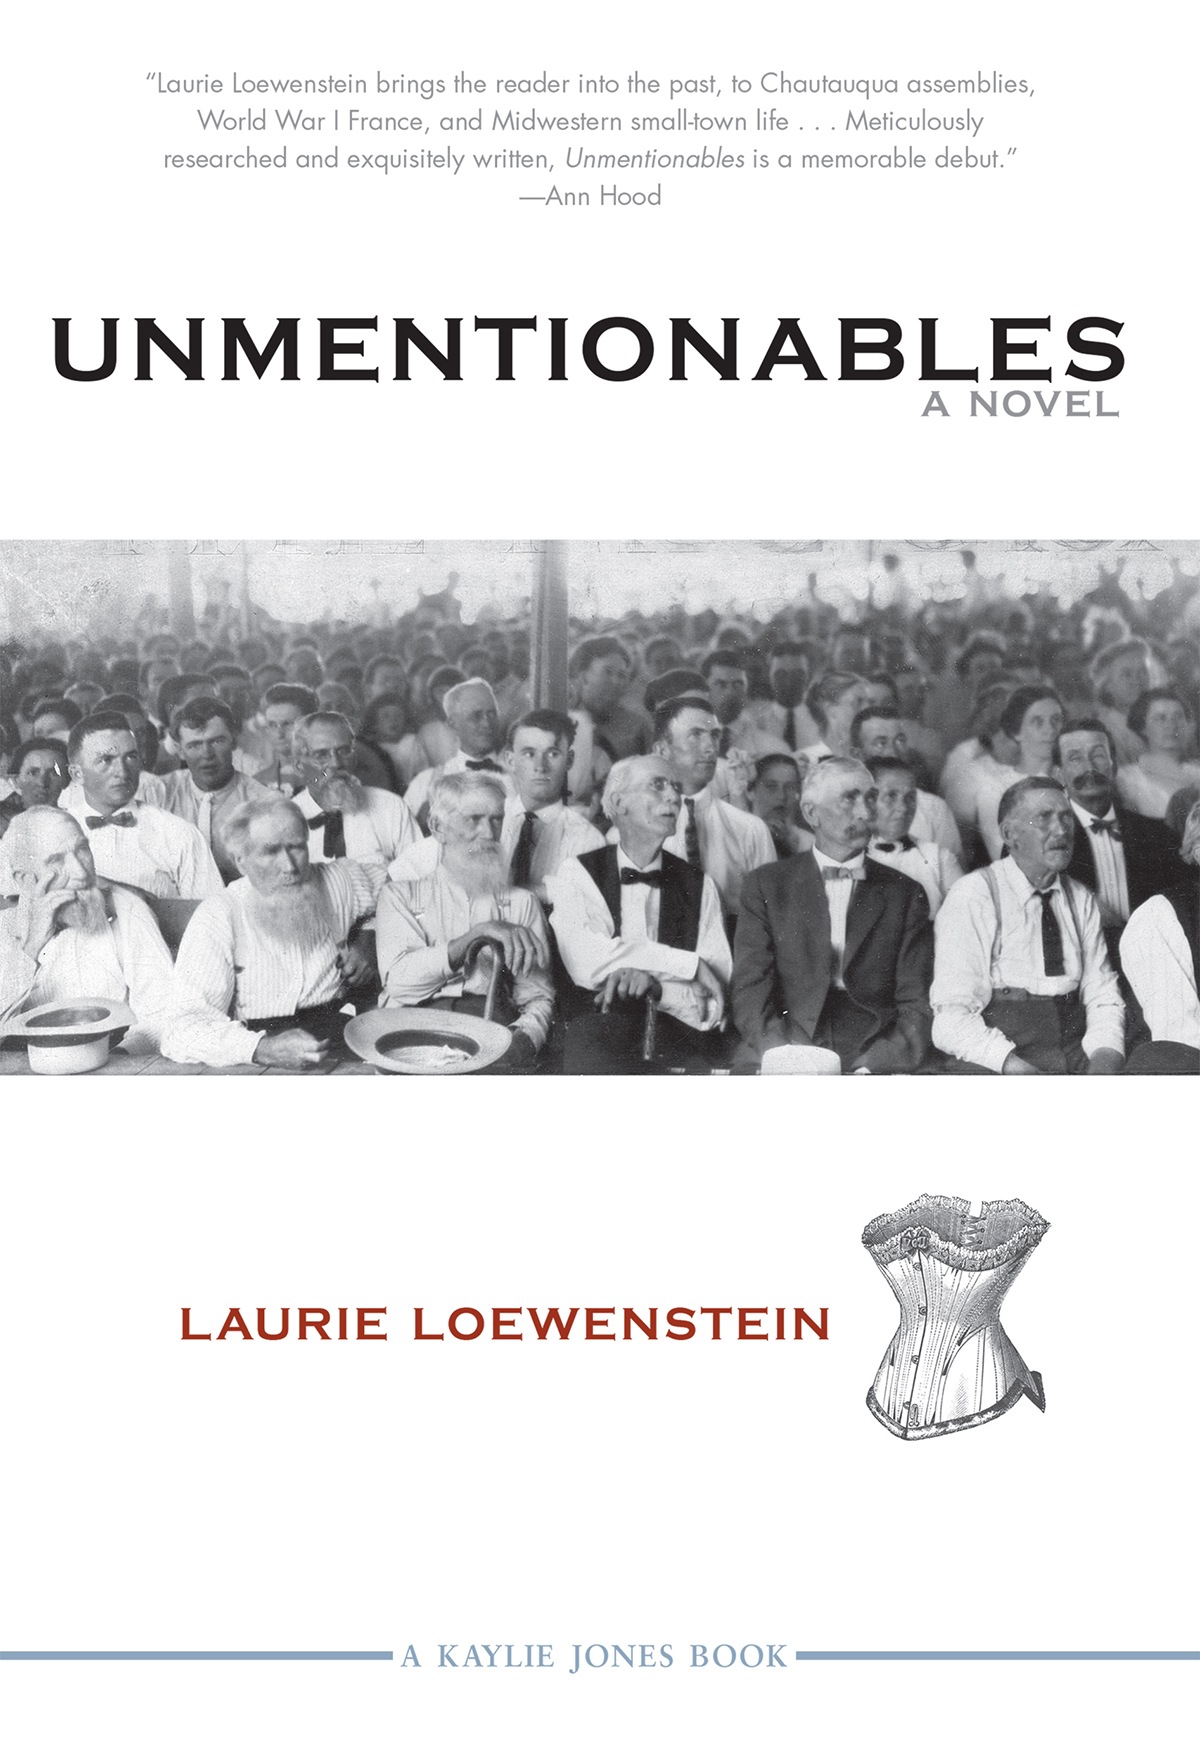 Unmentionables  by Laurie Loewenstein (Kaylie Jones Books / Akashic Books / Consortium, Jan 2014)